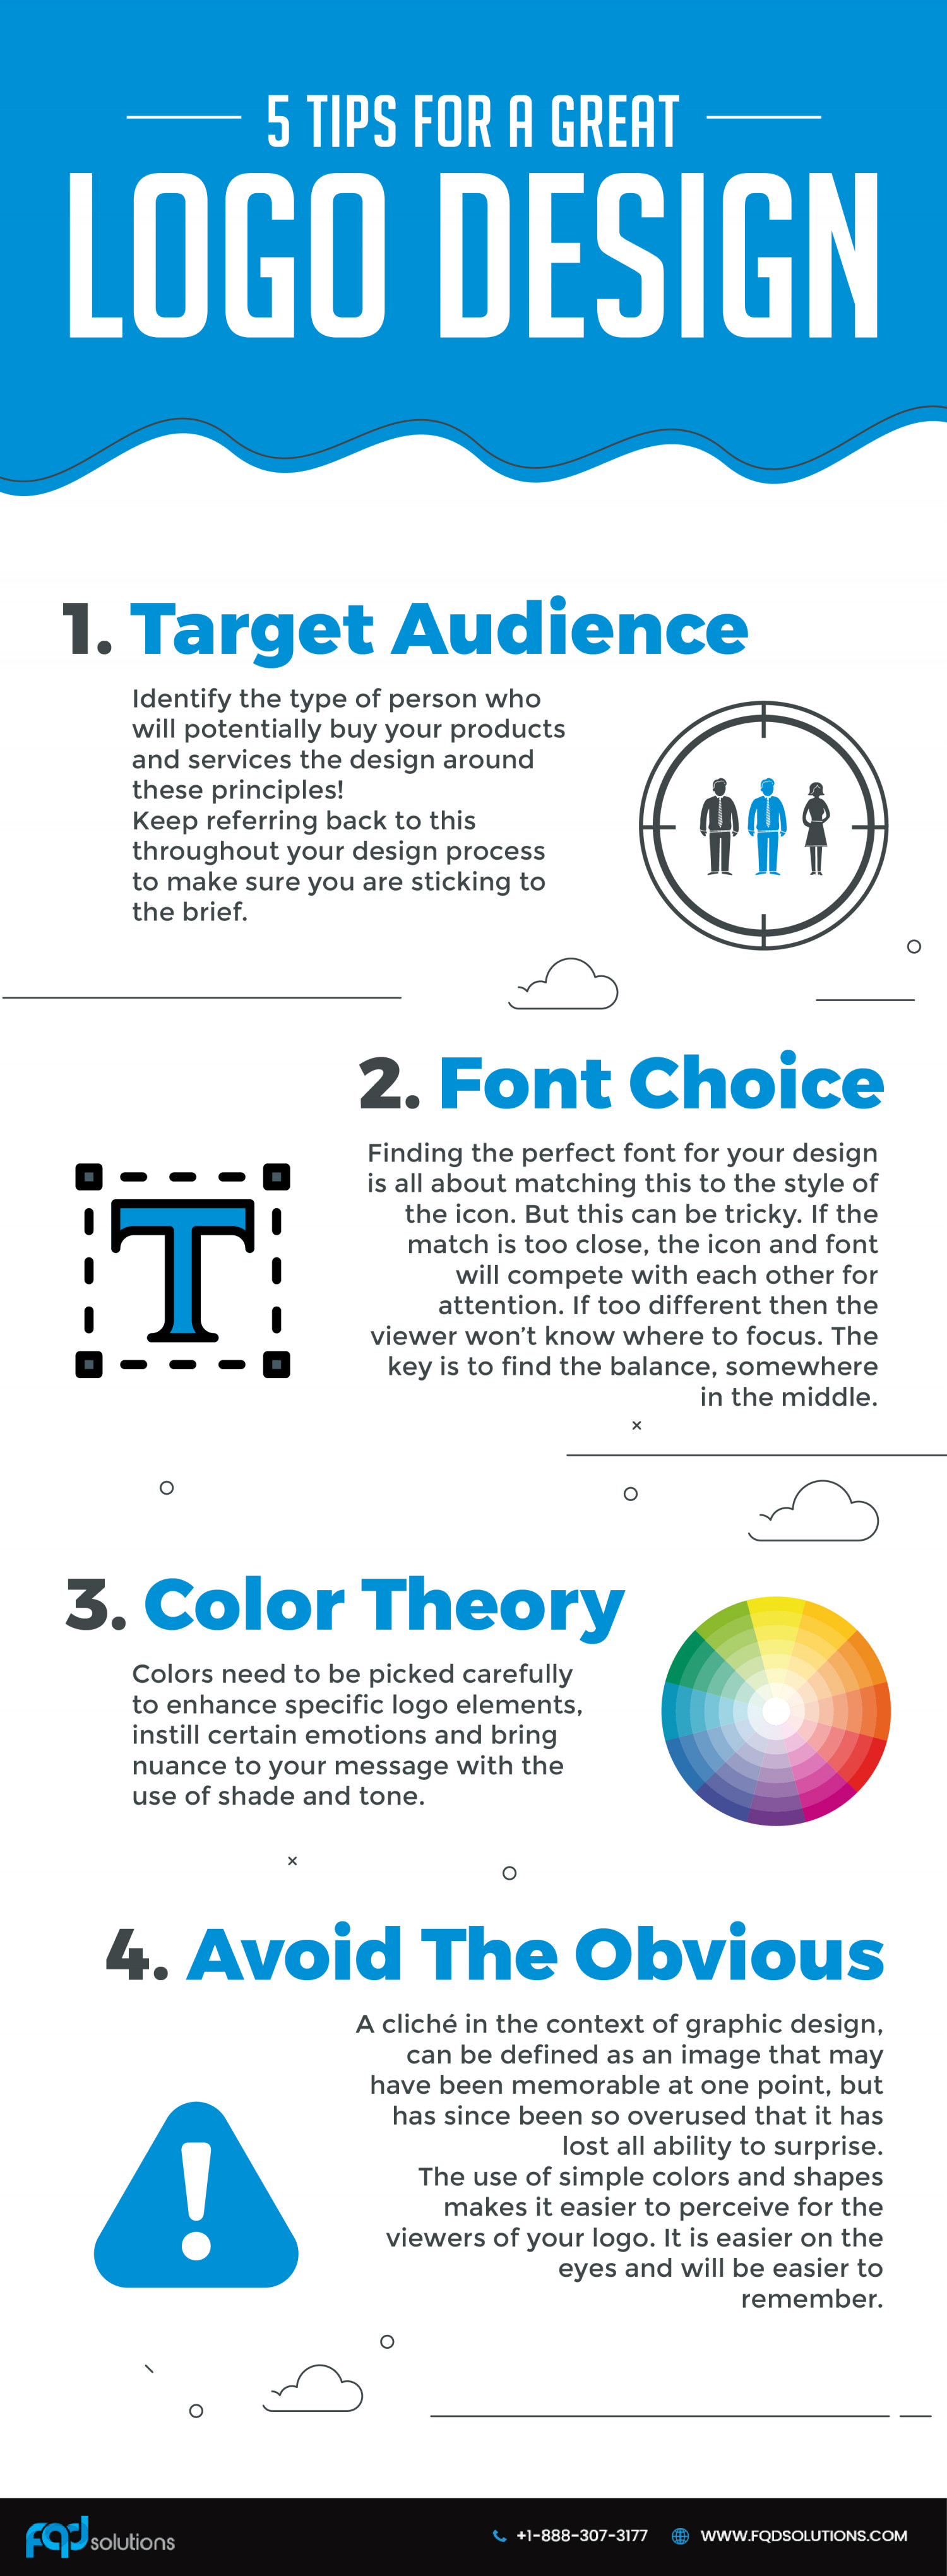 5 Tips For A Great Logo Design Infographic